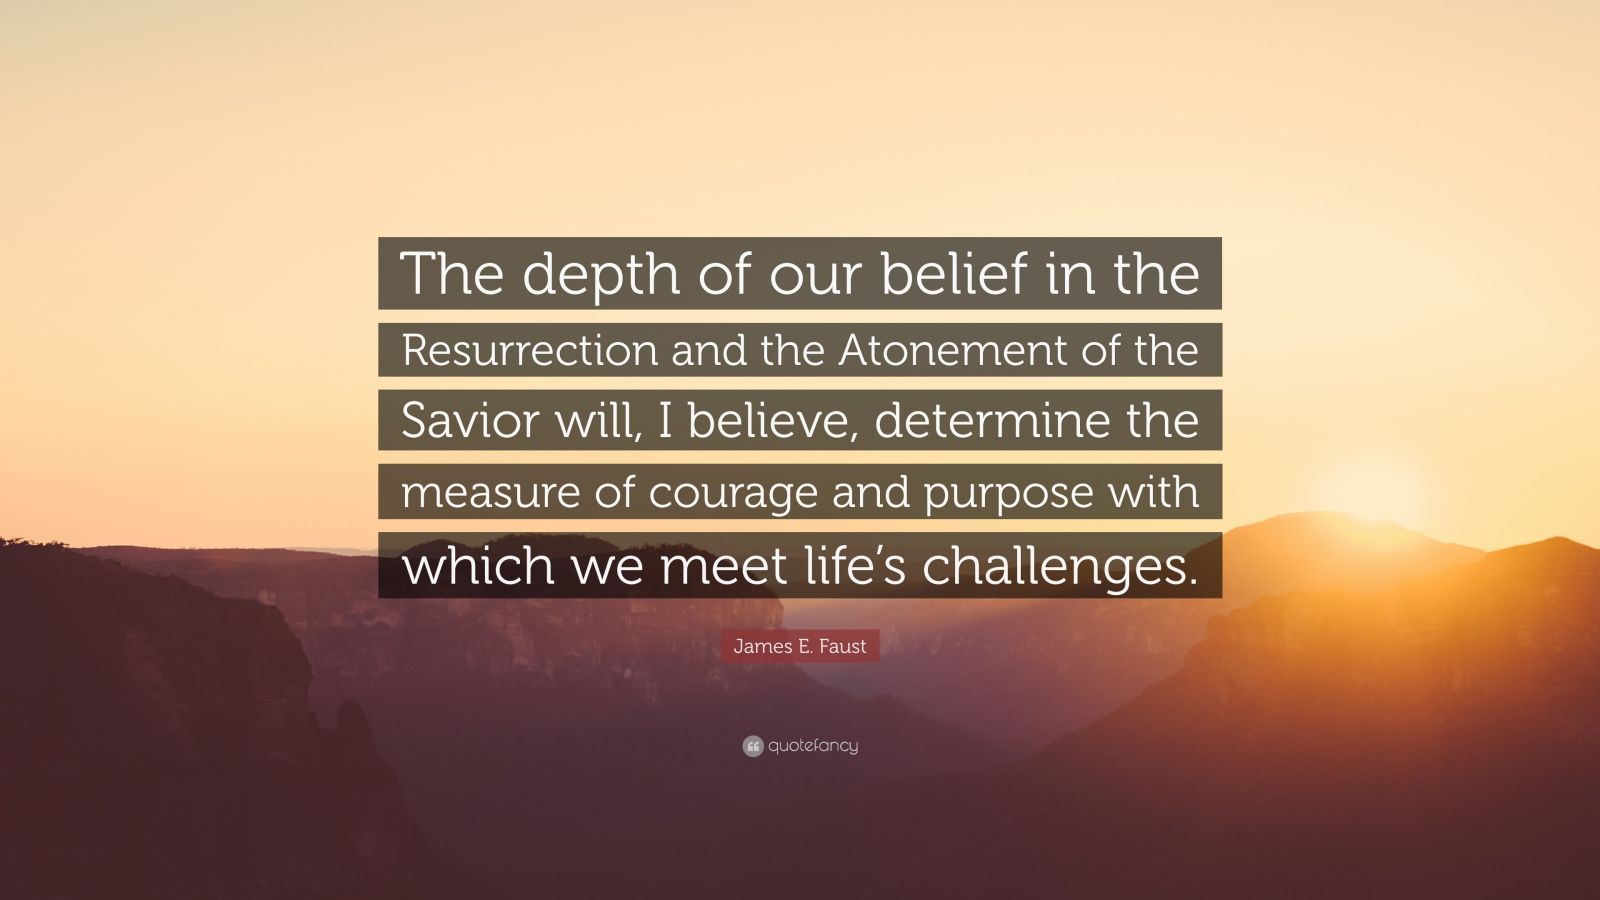 """James E. Faust Quote: """"The depth of our belief in the Resurrection and the Atonement of the Savior will, I believe, determine the measure of courage and purpose with which we meet life's challenges."""""""